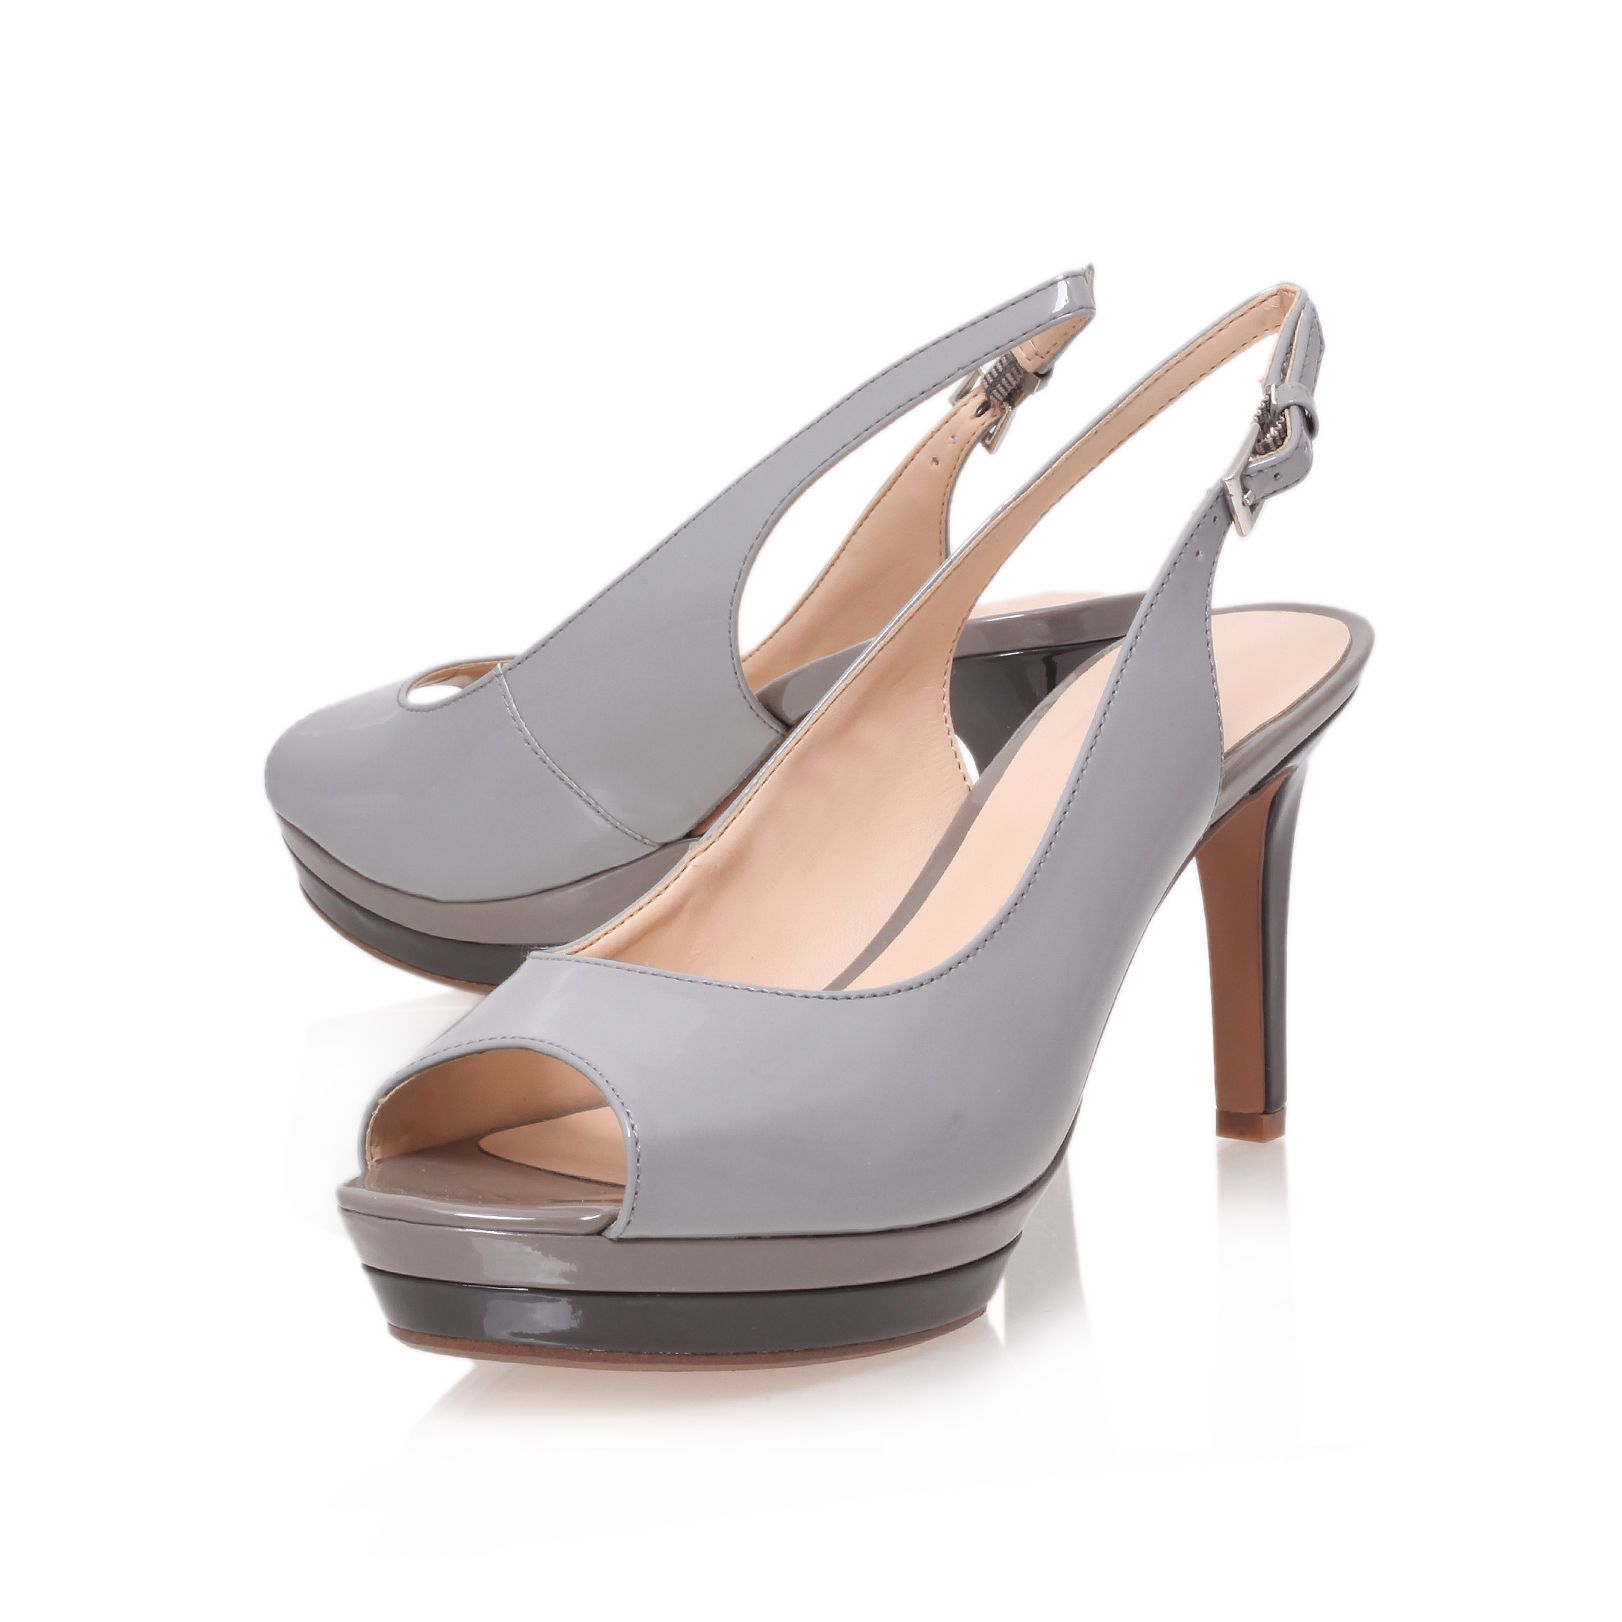 Able3 high heel court shoes